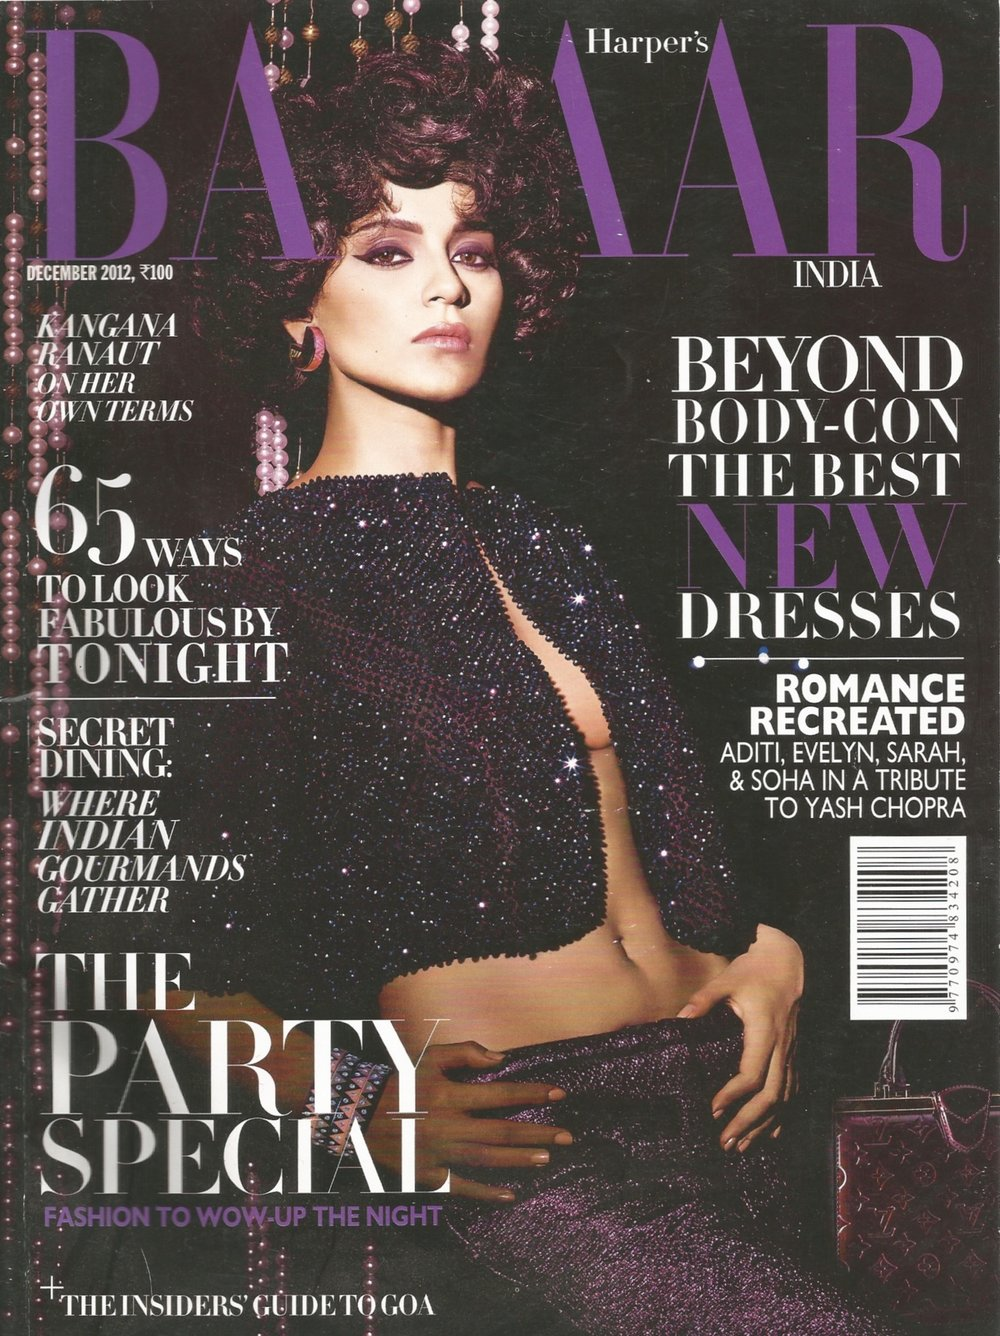 The cover of  Harper's Bazaar .